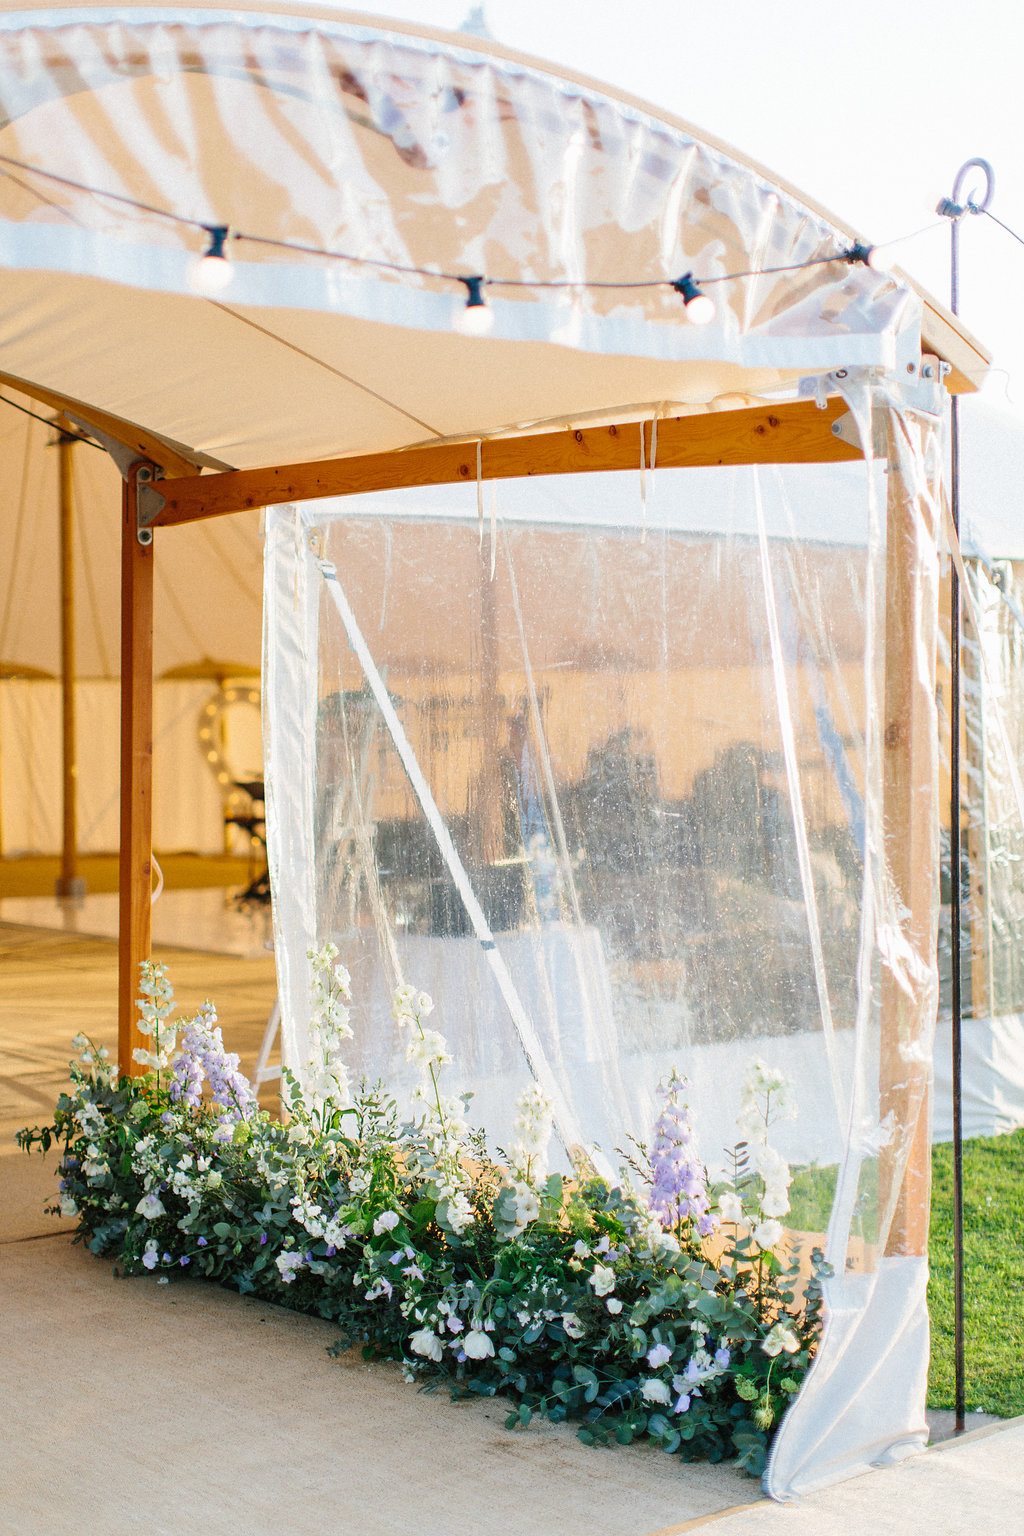 PapaKåta couple Georgina & Steve Sperry Tent Wedding in Barnby Dun, Doncaster captured by Melissa Beattie- Sperry Archway with floral designs by Lucy MacNicoll